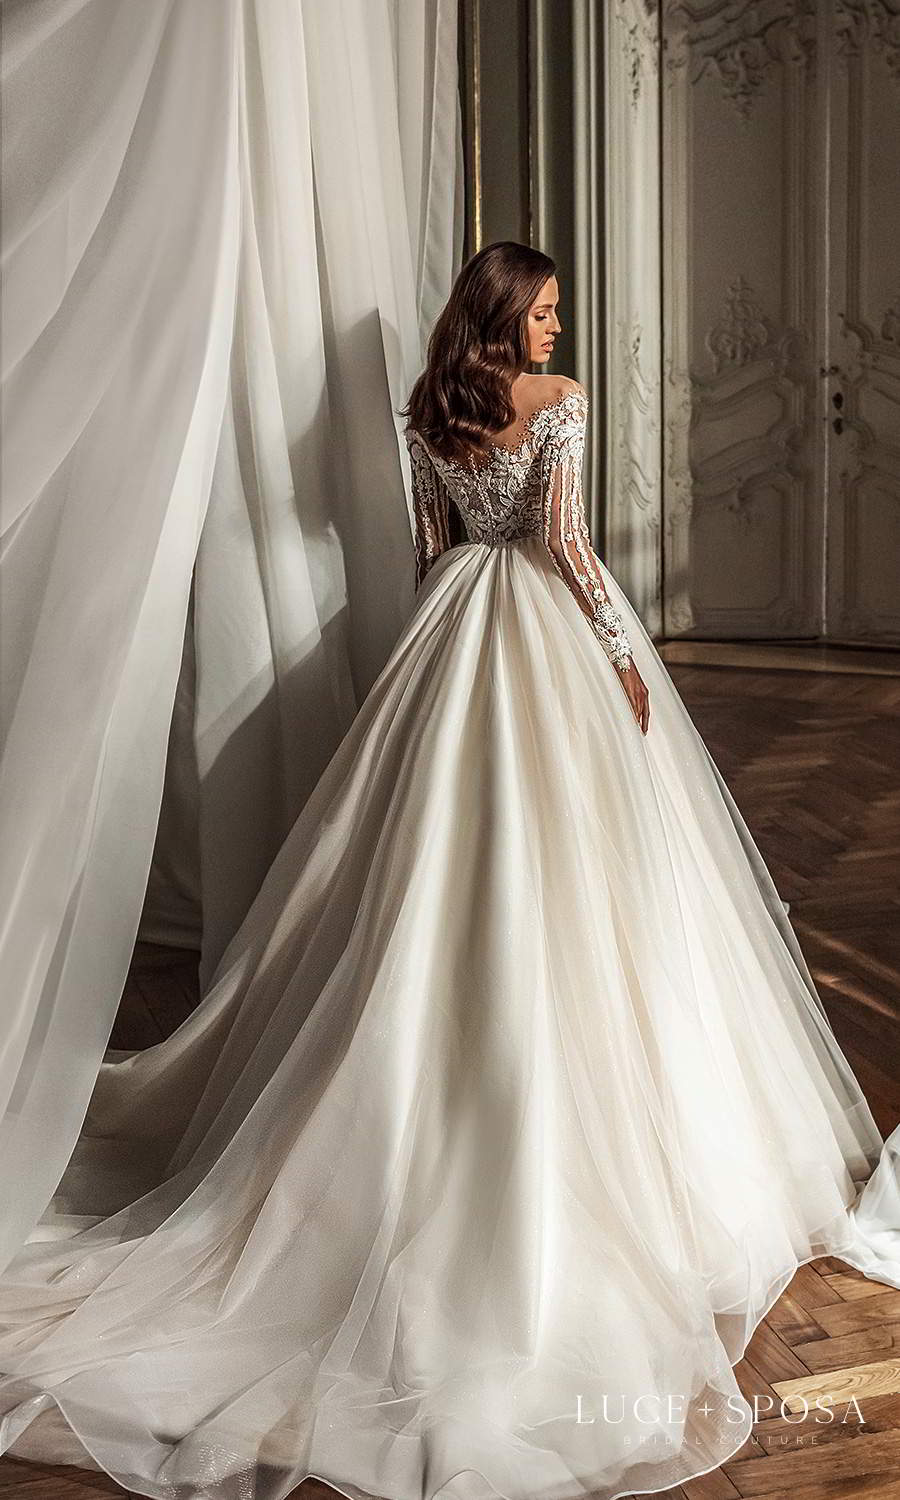 luce sposa 2021 shades of couture bridal long sleeves off shoulder sweetheart neckline heavily embellished bodice a line ball gown wedding dress chapel train (gabriella) bv